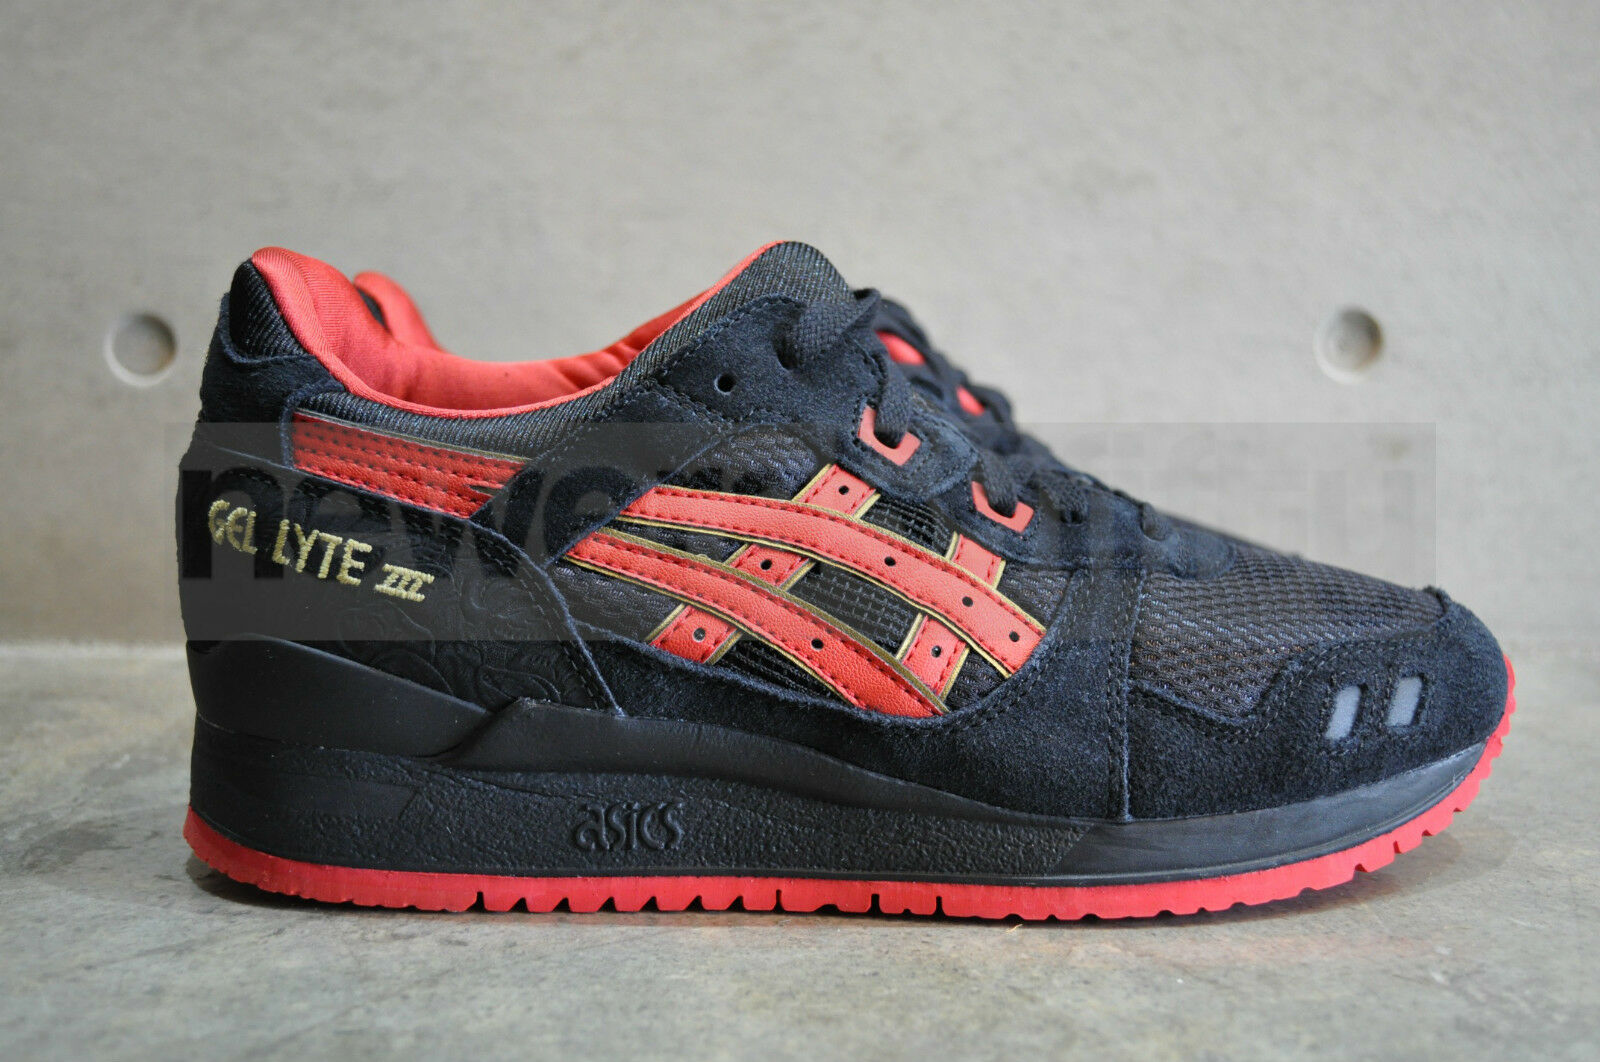 ASICS Gel-Lyte III Women's - Pack 'Haters' Valentines Day Pack - 6cc9d0